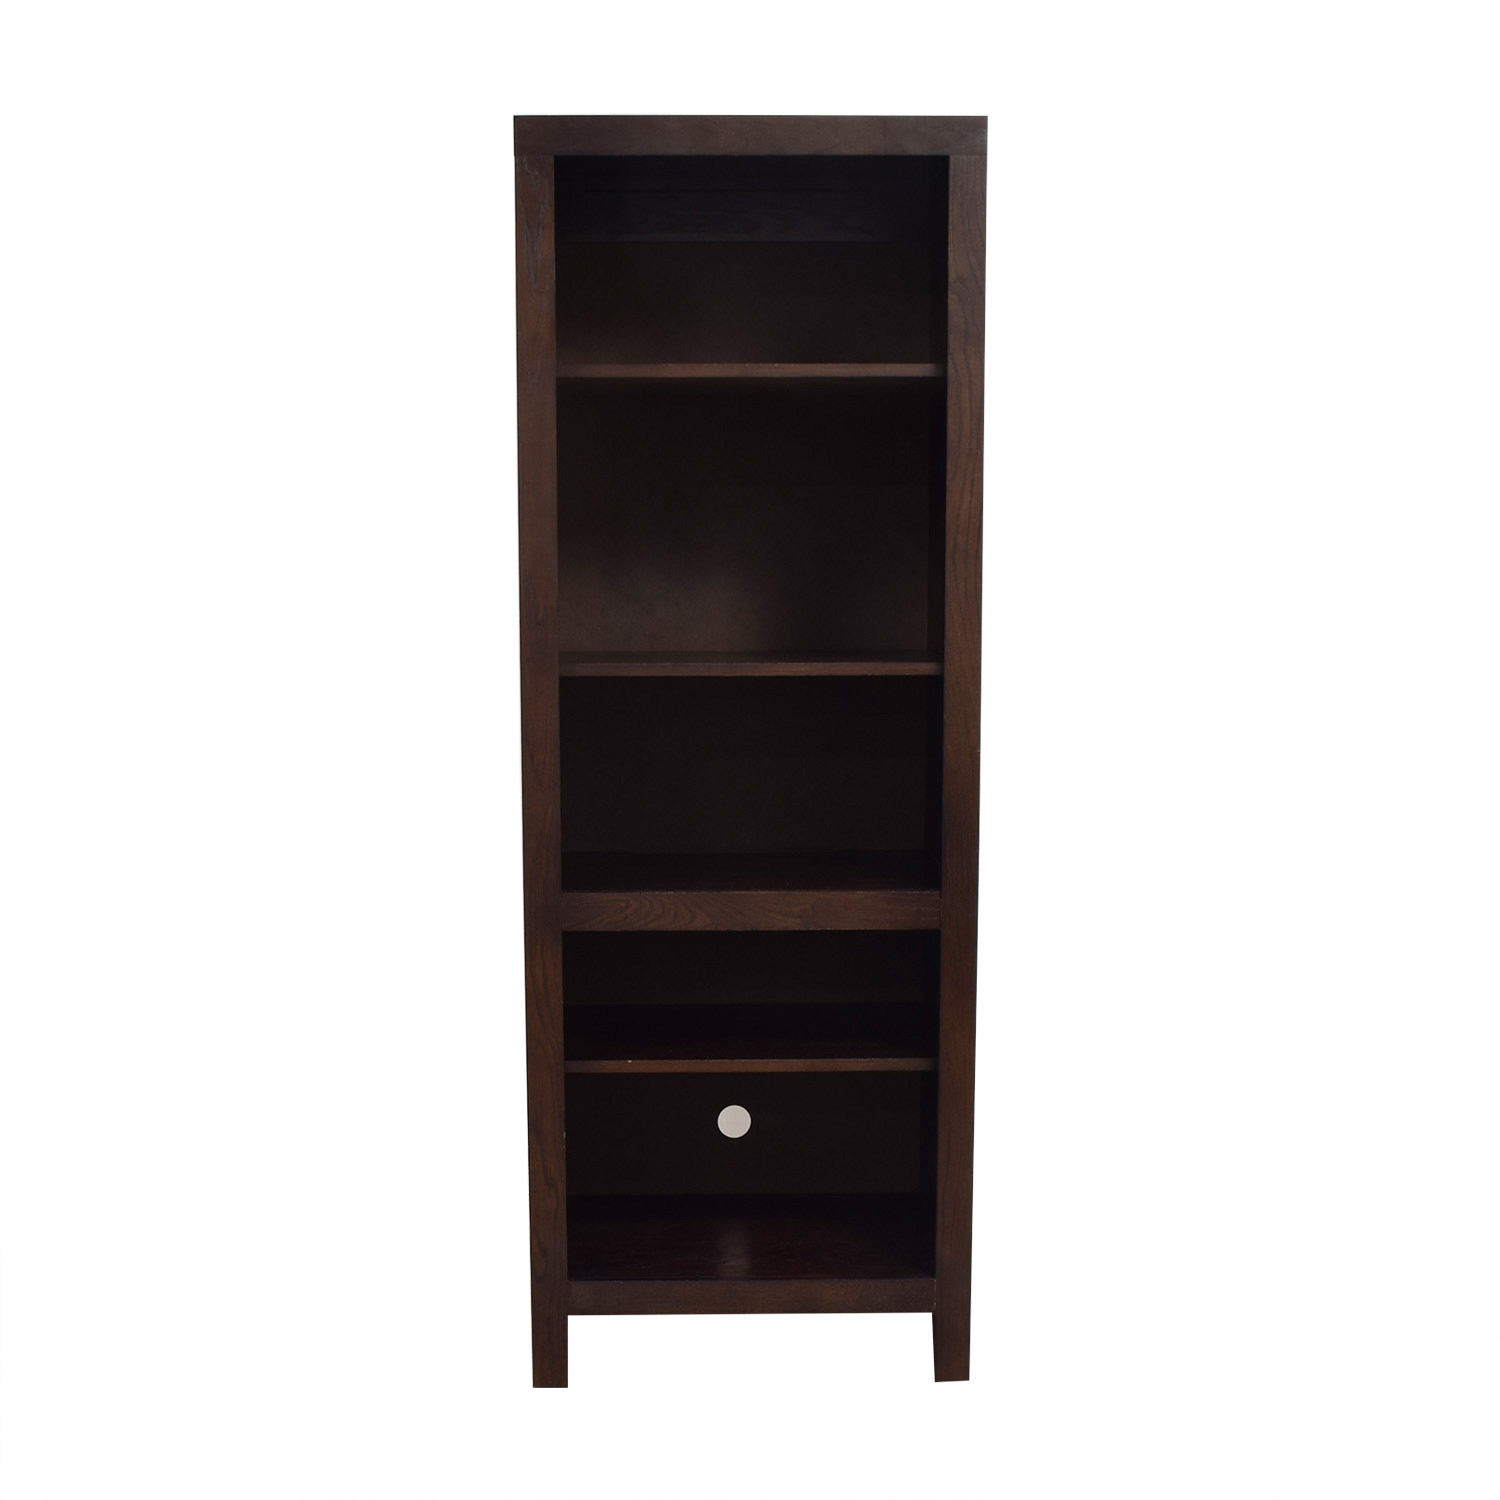 Golden Oak Golden Oak Del Mar Media Tower or Bookcase Bookcases & Shelving